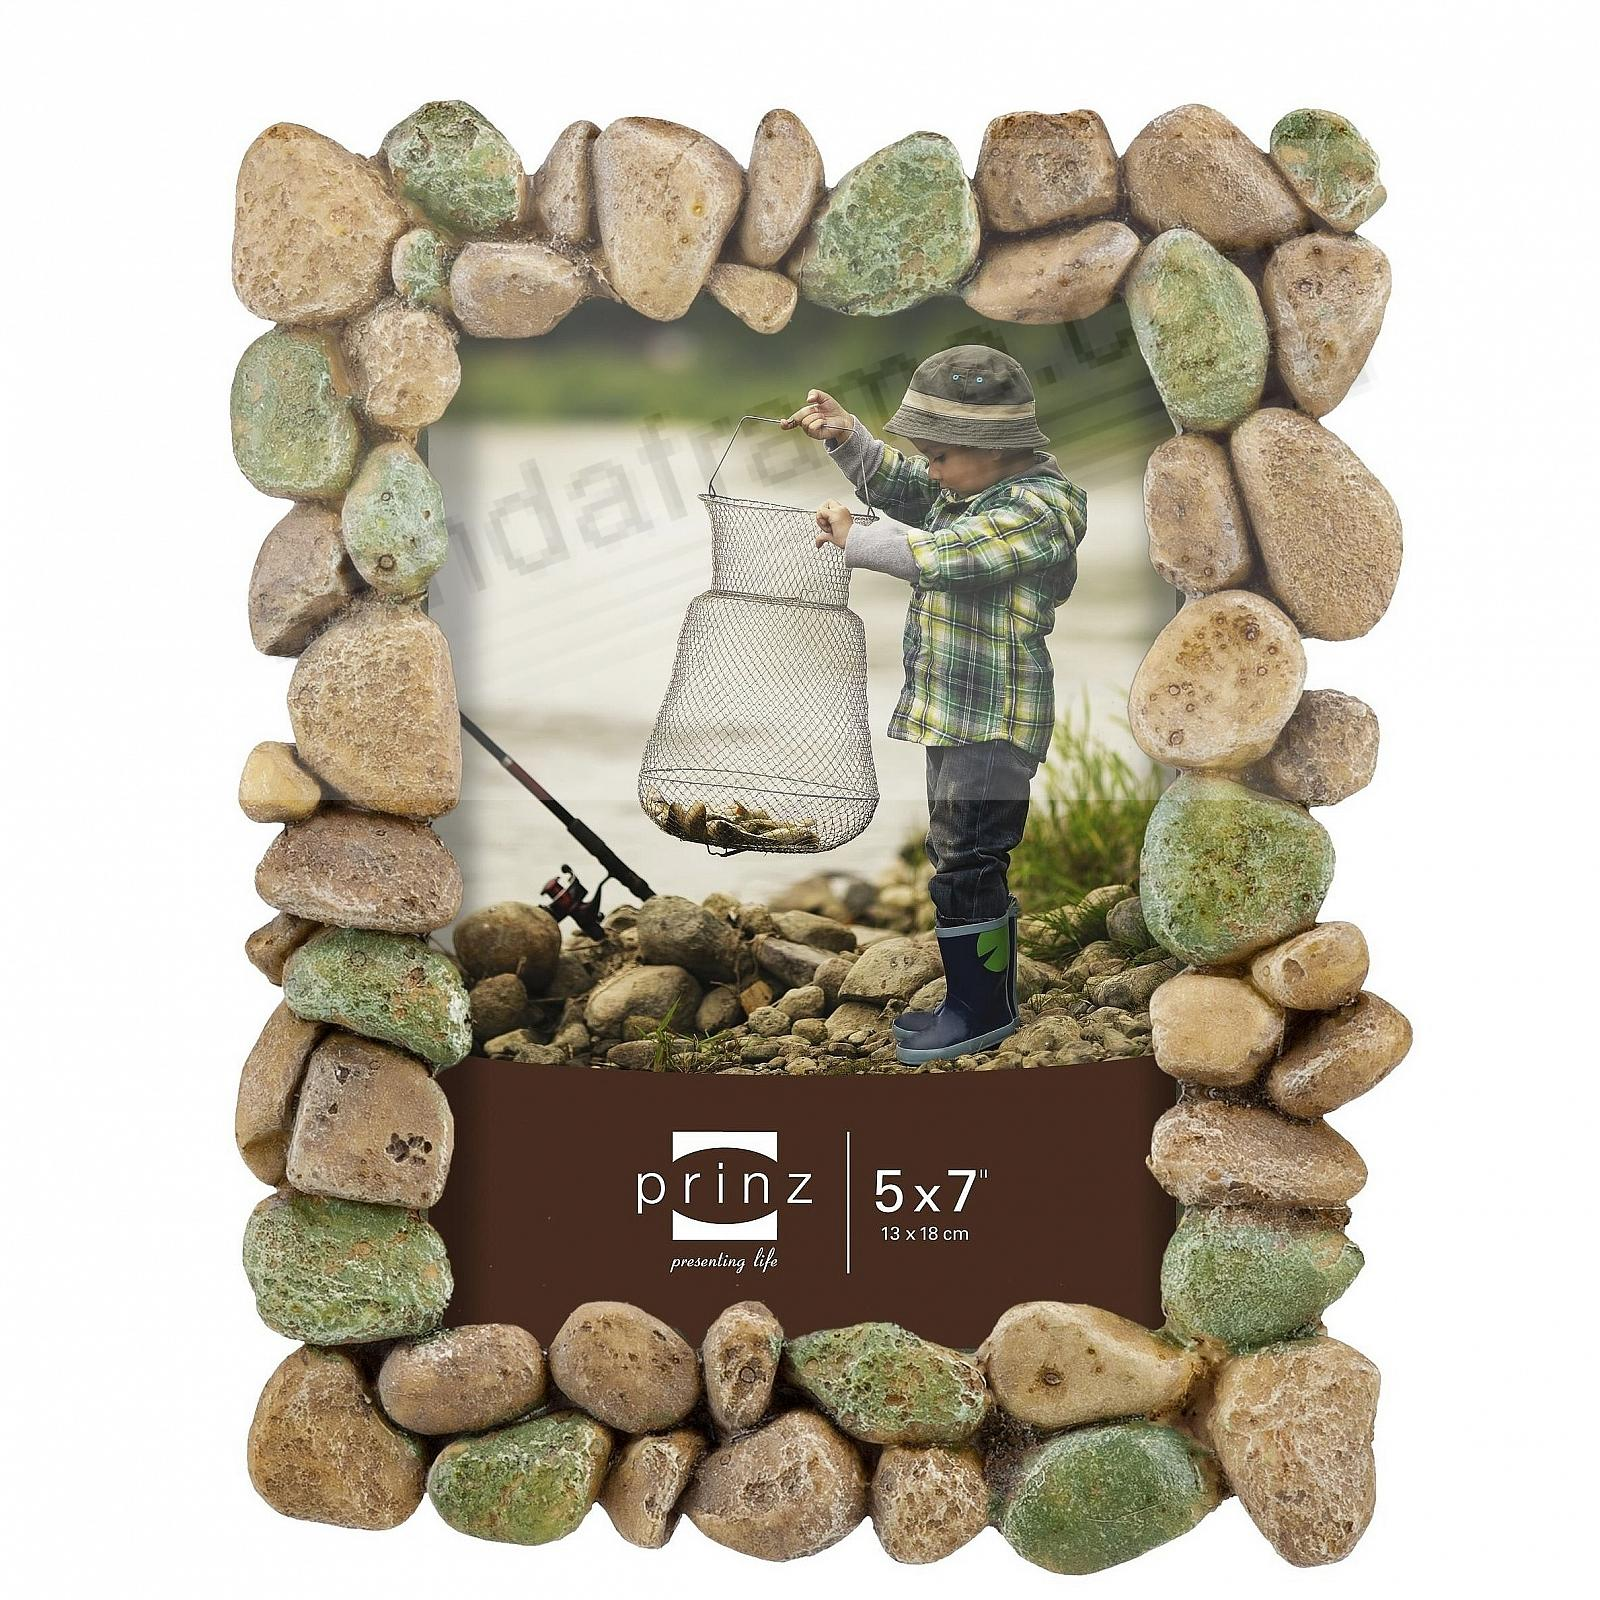 River Rock Rustic Stone 5x7 Frame By Prinz Designs